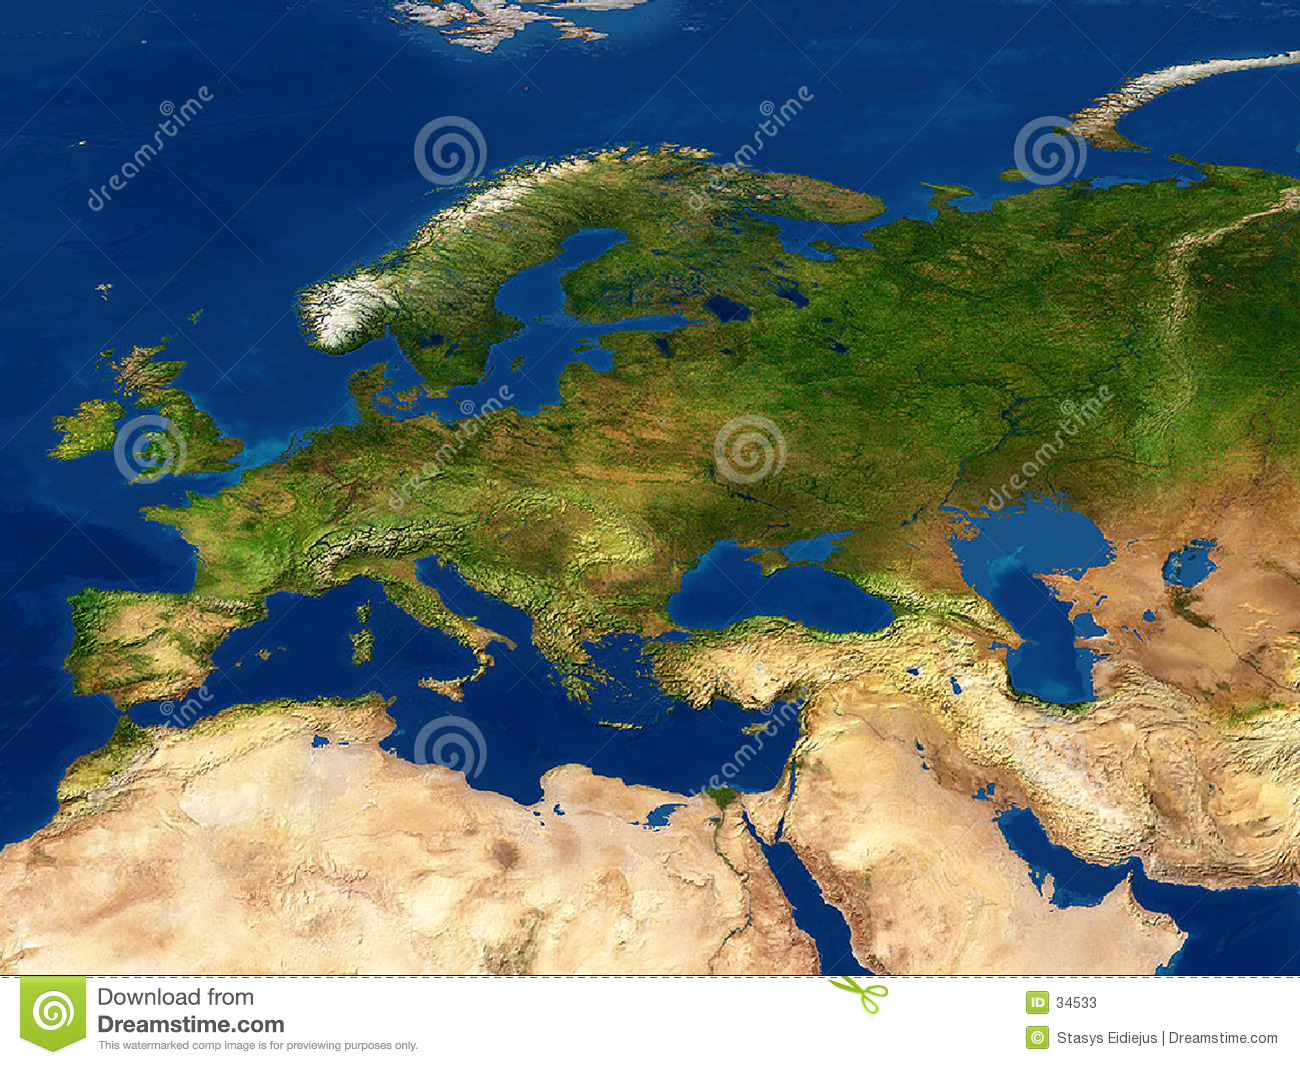 Earth View Map Europe Stock Illustration Illustration Of Cosmos